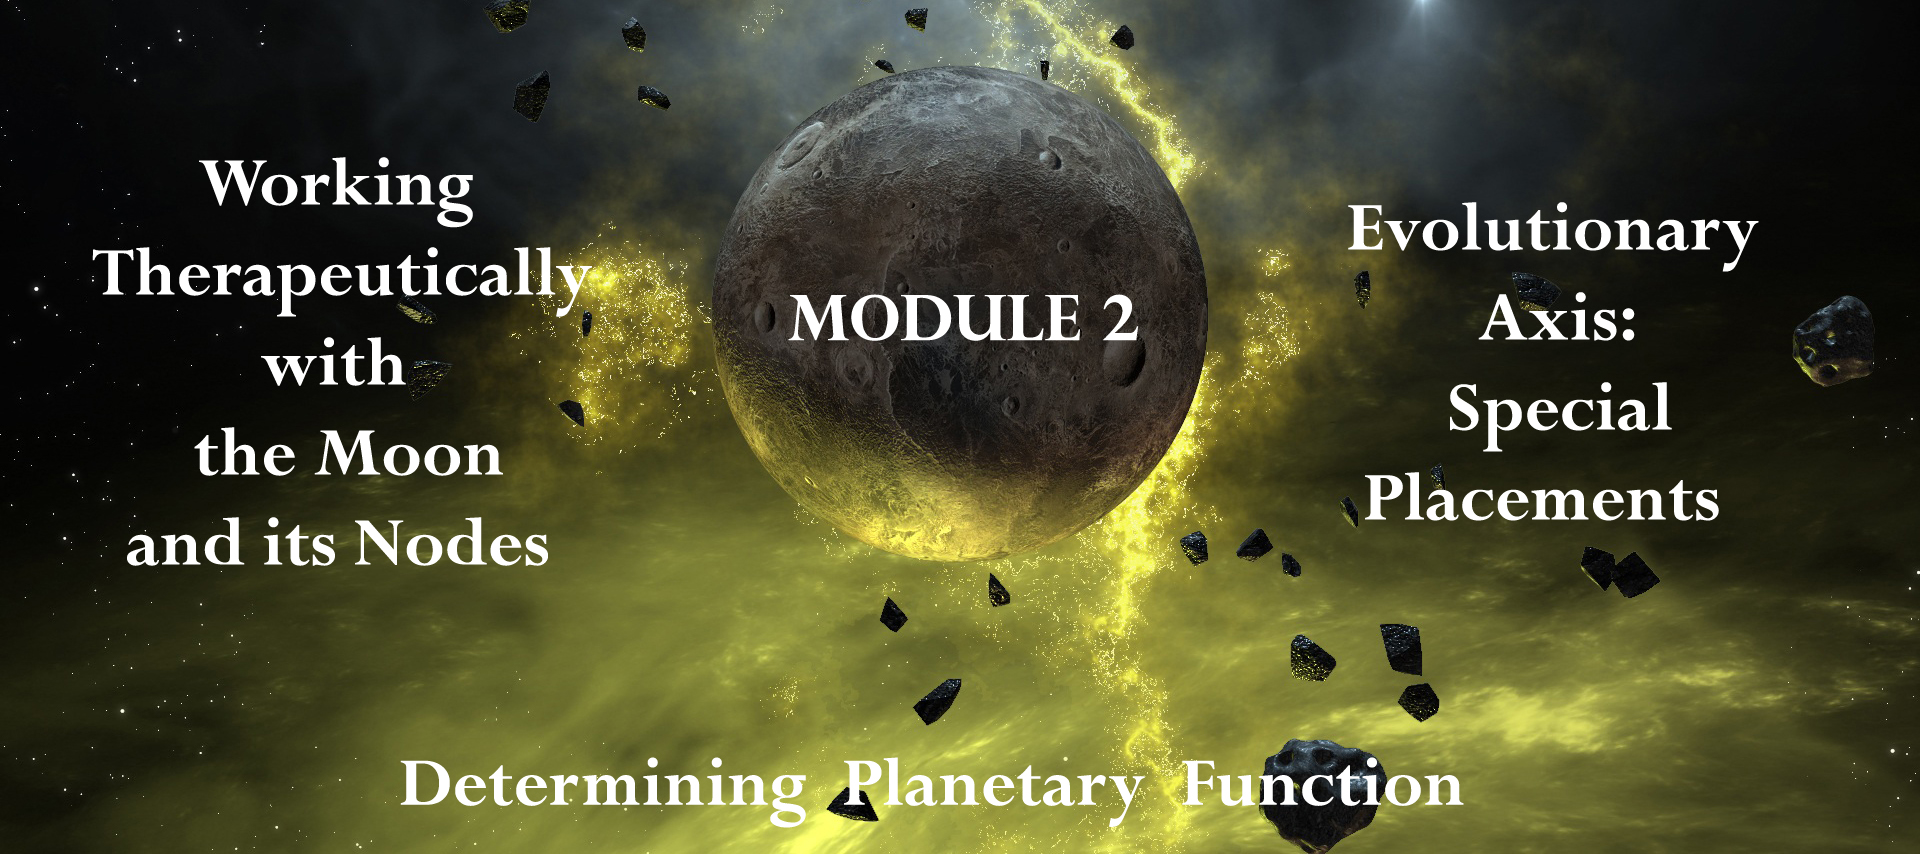 Module 2: Working Therapeutically with the Moon and its Nodes, Evolutionary Axis: Special Placements, Determining Planetary Function